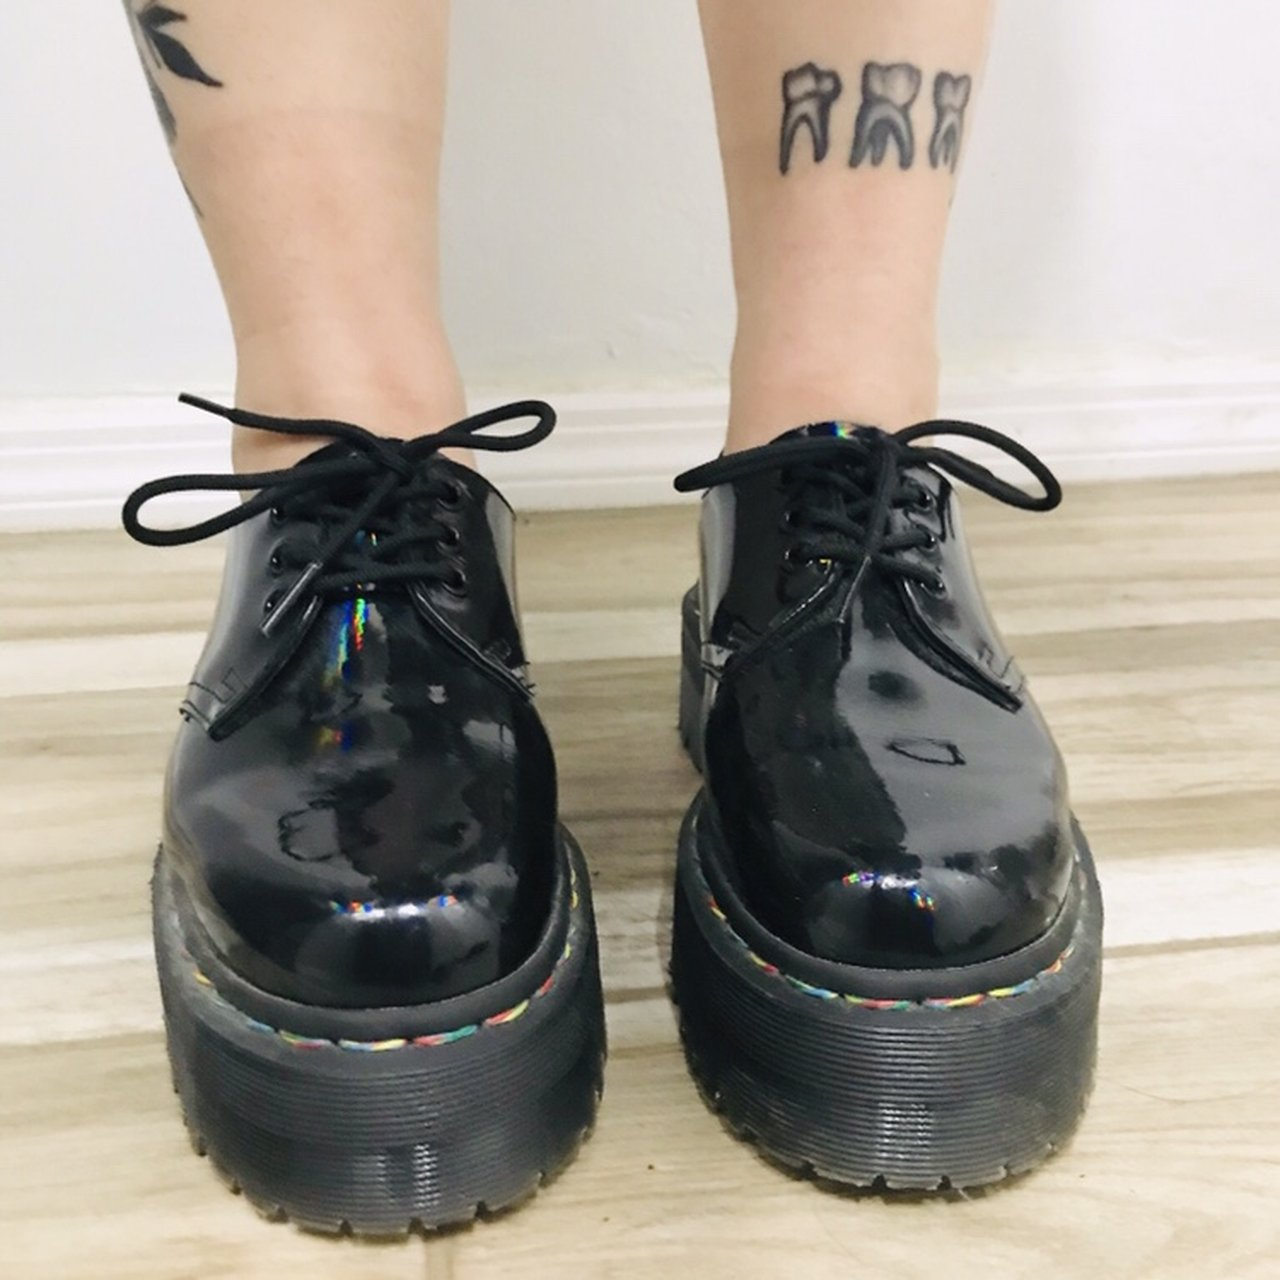 88d44c768d @creativerhino. 2 months ago. Los Angeles, United States. Dr. Martens 1461  Quad 3-Eye with a rainbow welt stitching. Black Rainbow Patent Leather.